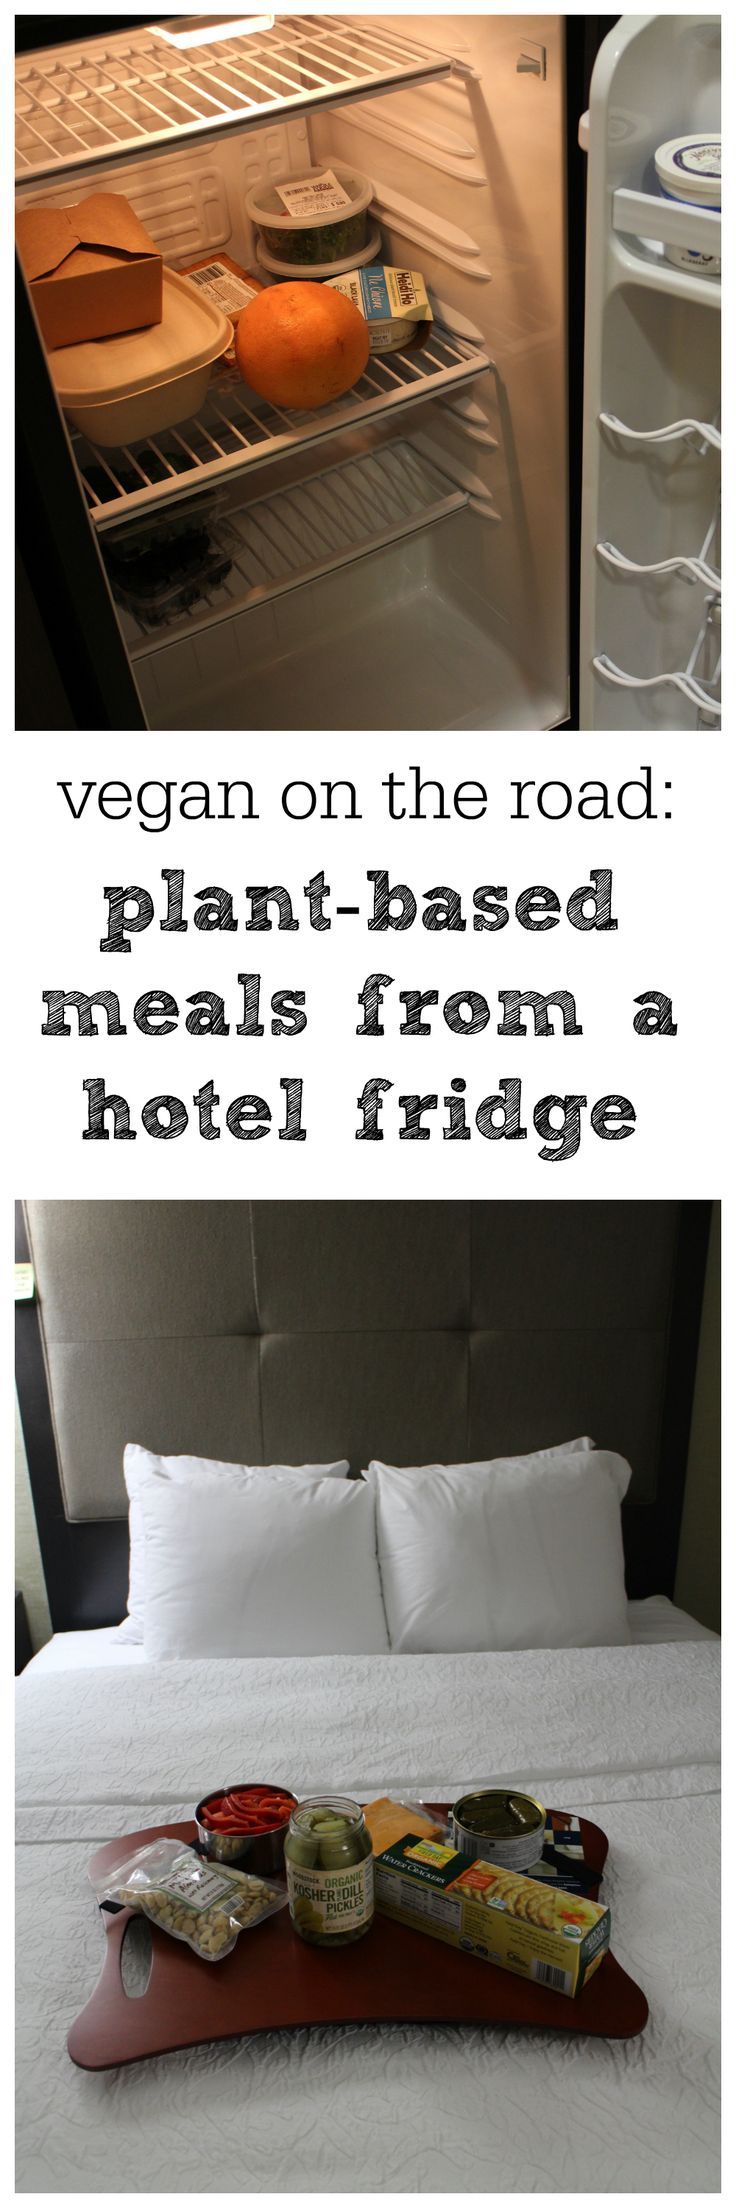 @Cadryskitchen shows how to eat vegan meals in a hotel, even if you only have a dorm-sized refrigerator #vegan #travel